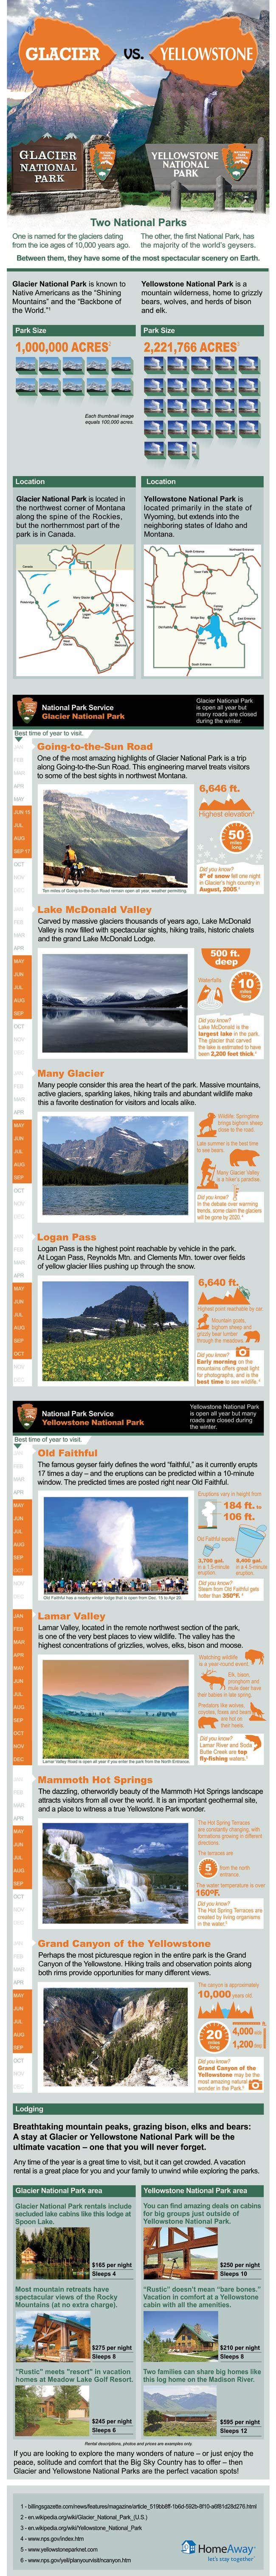 Bask, in the Glory of the Great American Outdoors: Glacier vs. Yellowstone National Parks